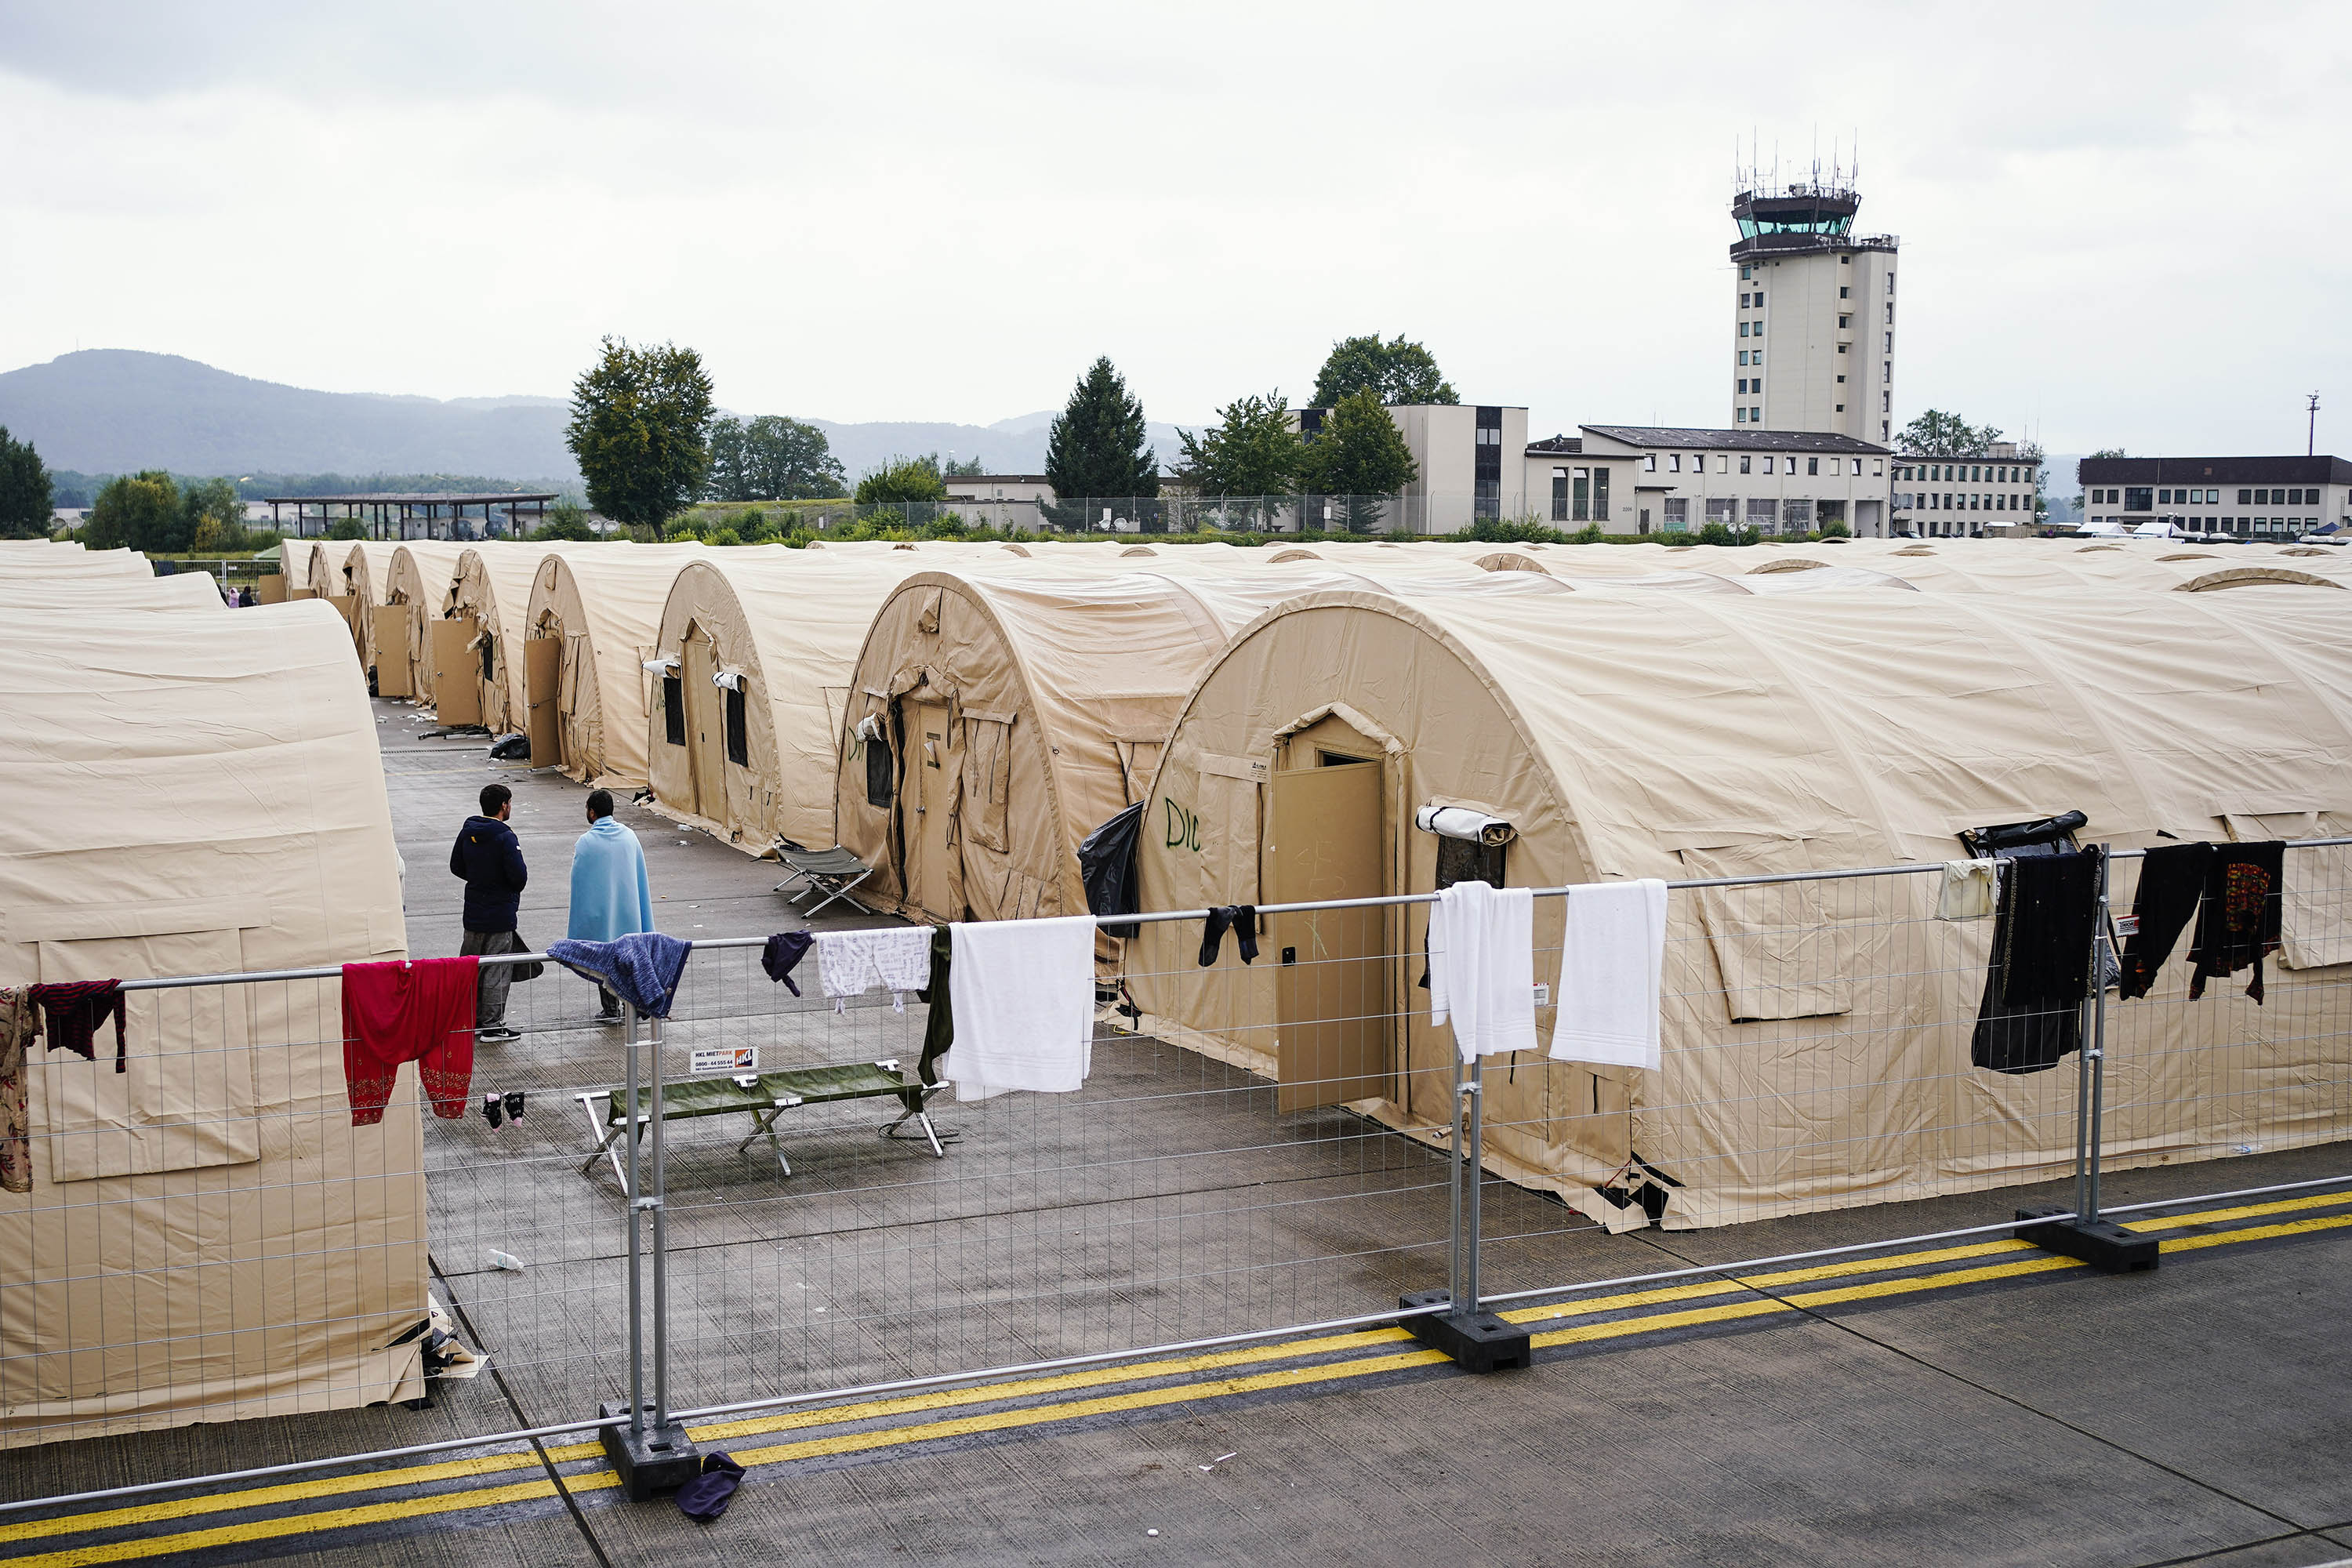 People evacuated from Afghanistan are seen between tents at Ramstein Air Base in Germany on August 30.